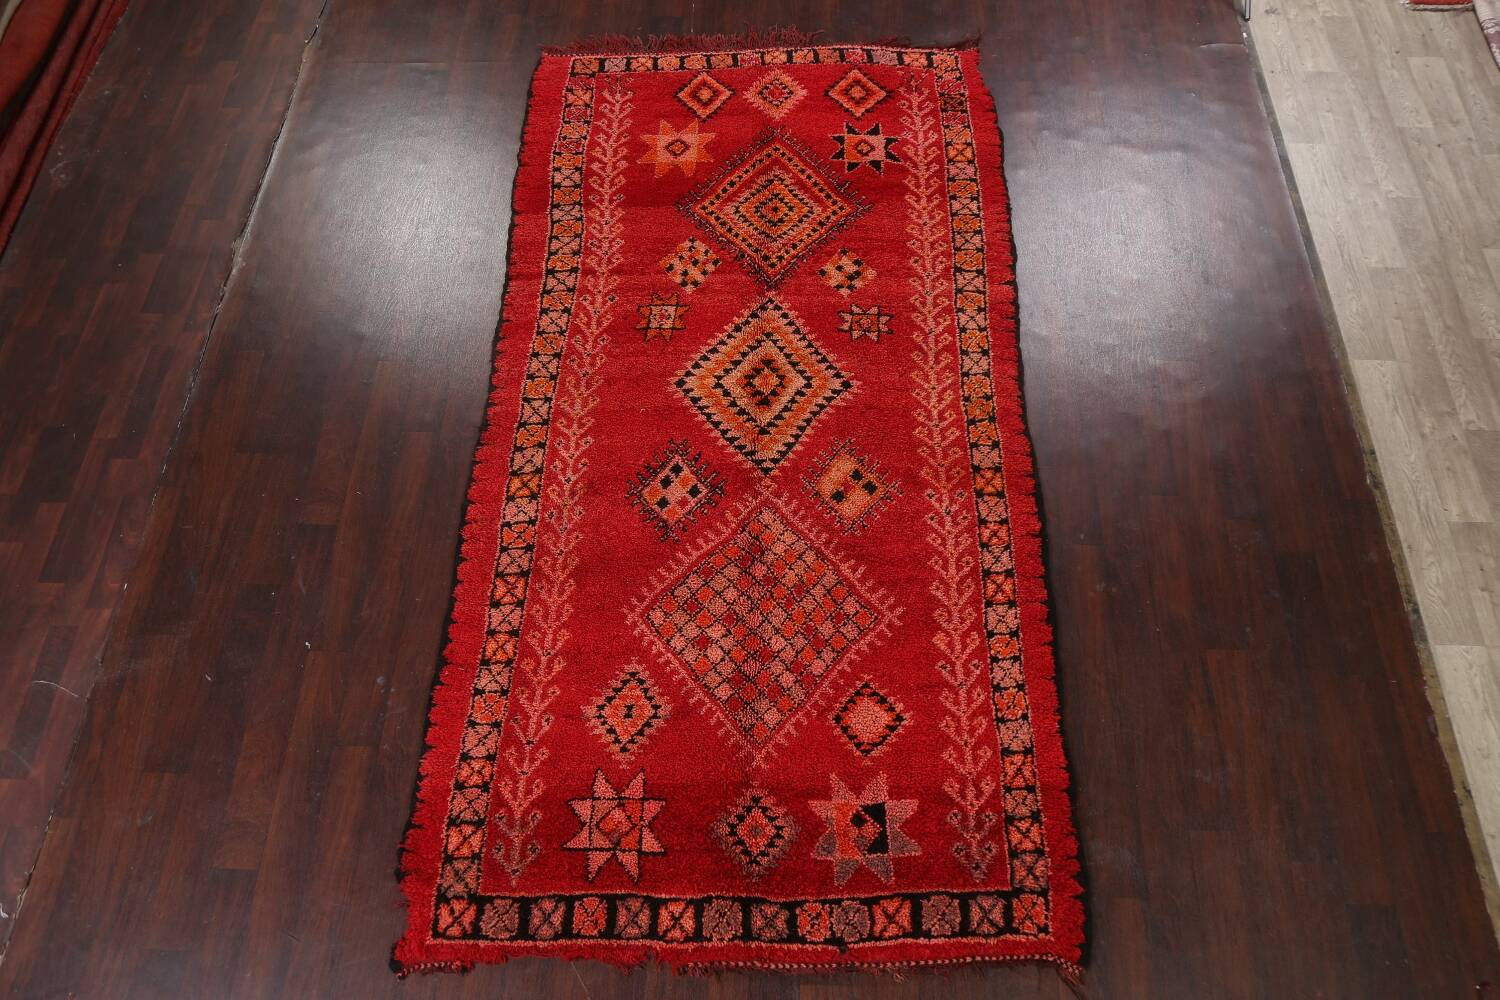 Red Moroccan Berber Area Rug 6x11 image 20